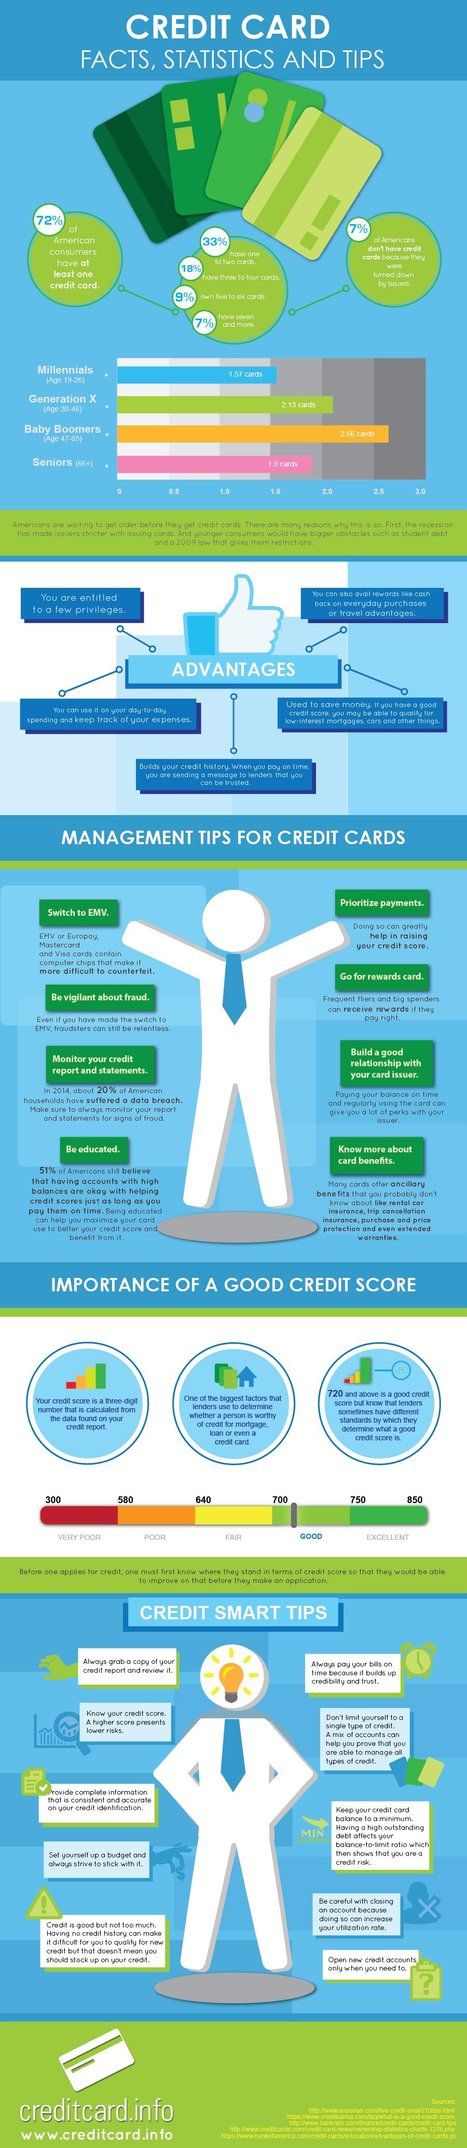 Credit Card Facts, Statistics & Tips | Infographics | Scoop.it